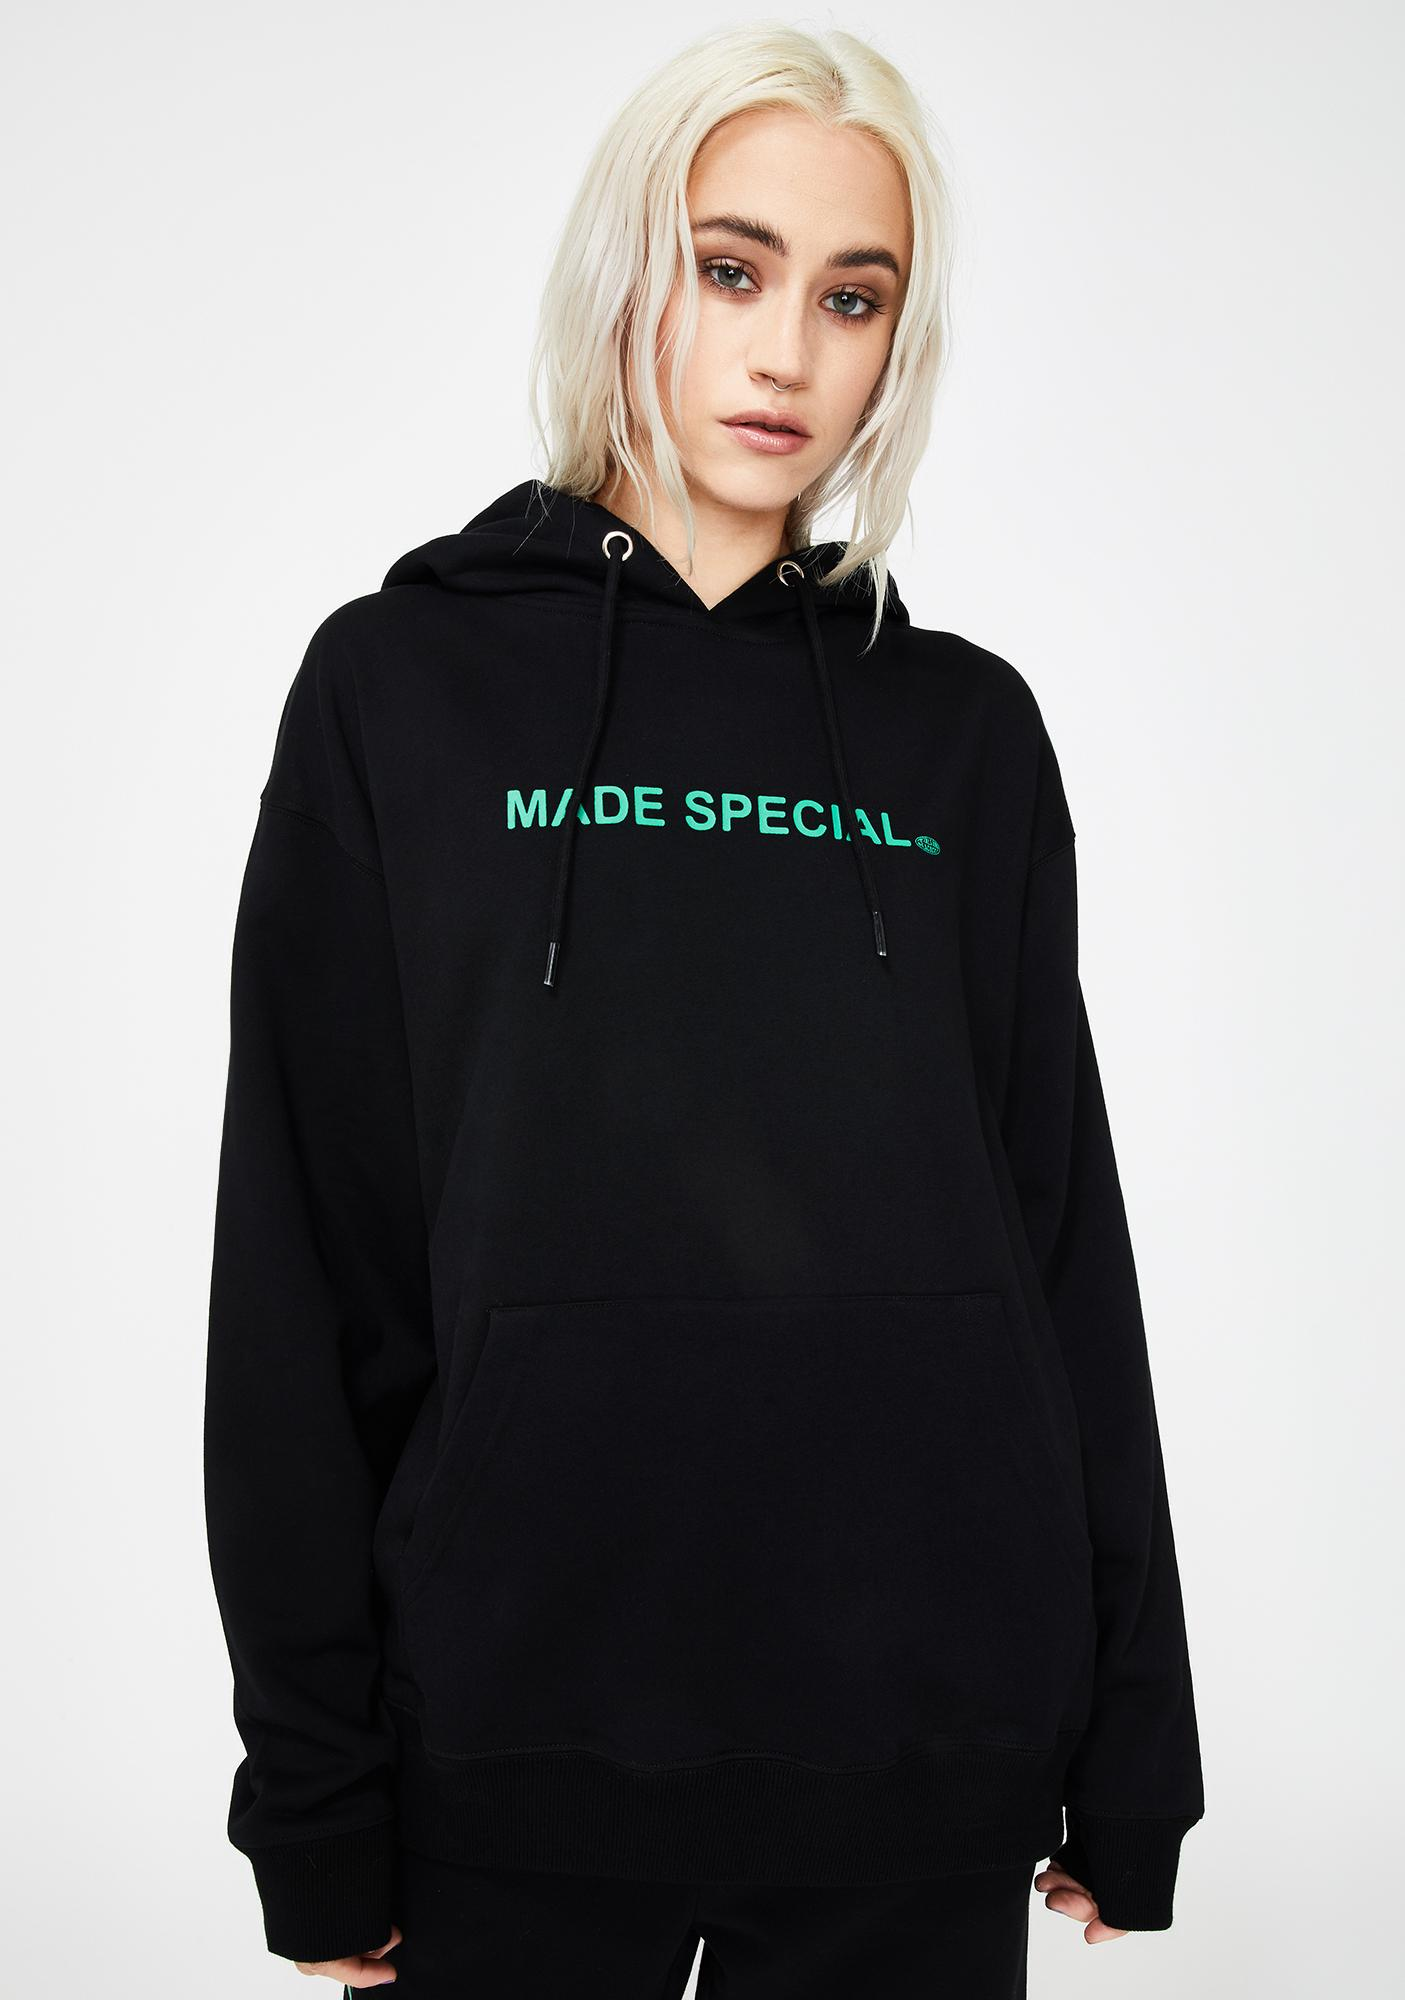 Petals and Peacocks X Pink's Hot Dogs Made Special Hoodie